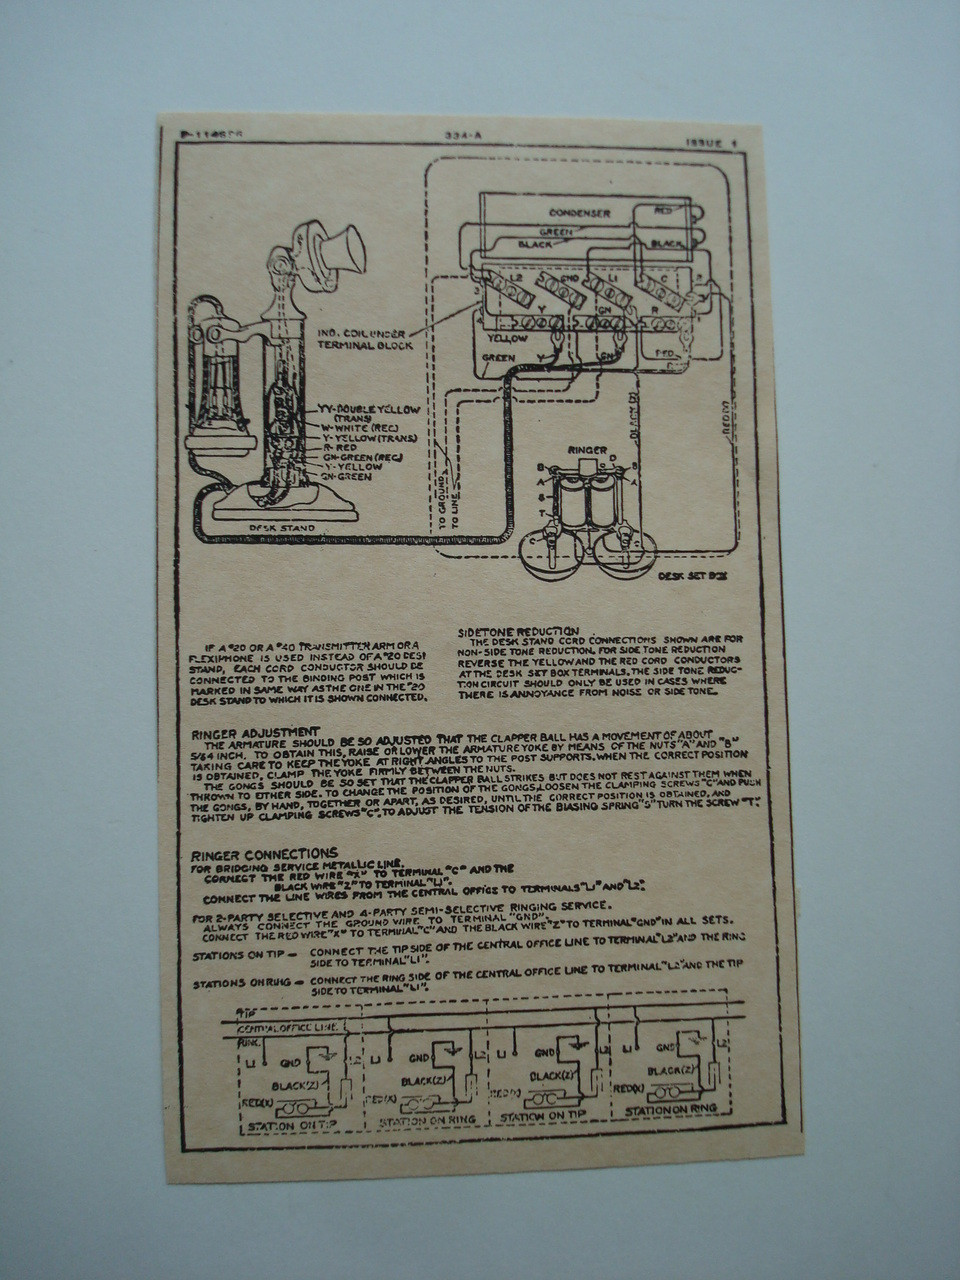 Western Electric 334A ringer subset box wiring diagram glue on | Old on old telephone diagram, western electric telephone manuals, western electric wall phone, copper network diagram, western electric telephone parts, western electric payphone schematic, western electric telephone transformer, western electric network diagram, western electric telephones history, western electric 202, western electric antique telephones, western electric telephones wall mount, western plow solenoid wiring, western electric telephone line, western electric telephone repair, natural gas meter parts diagram, western electric telephone identification, phone diagram, utility pole diagram,